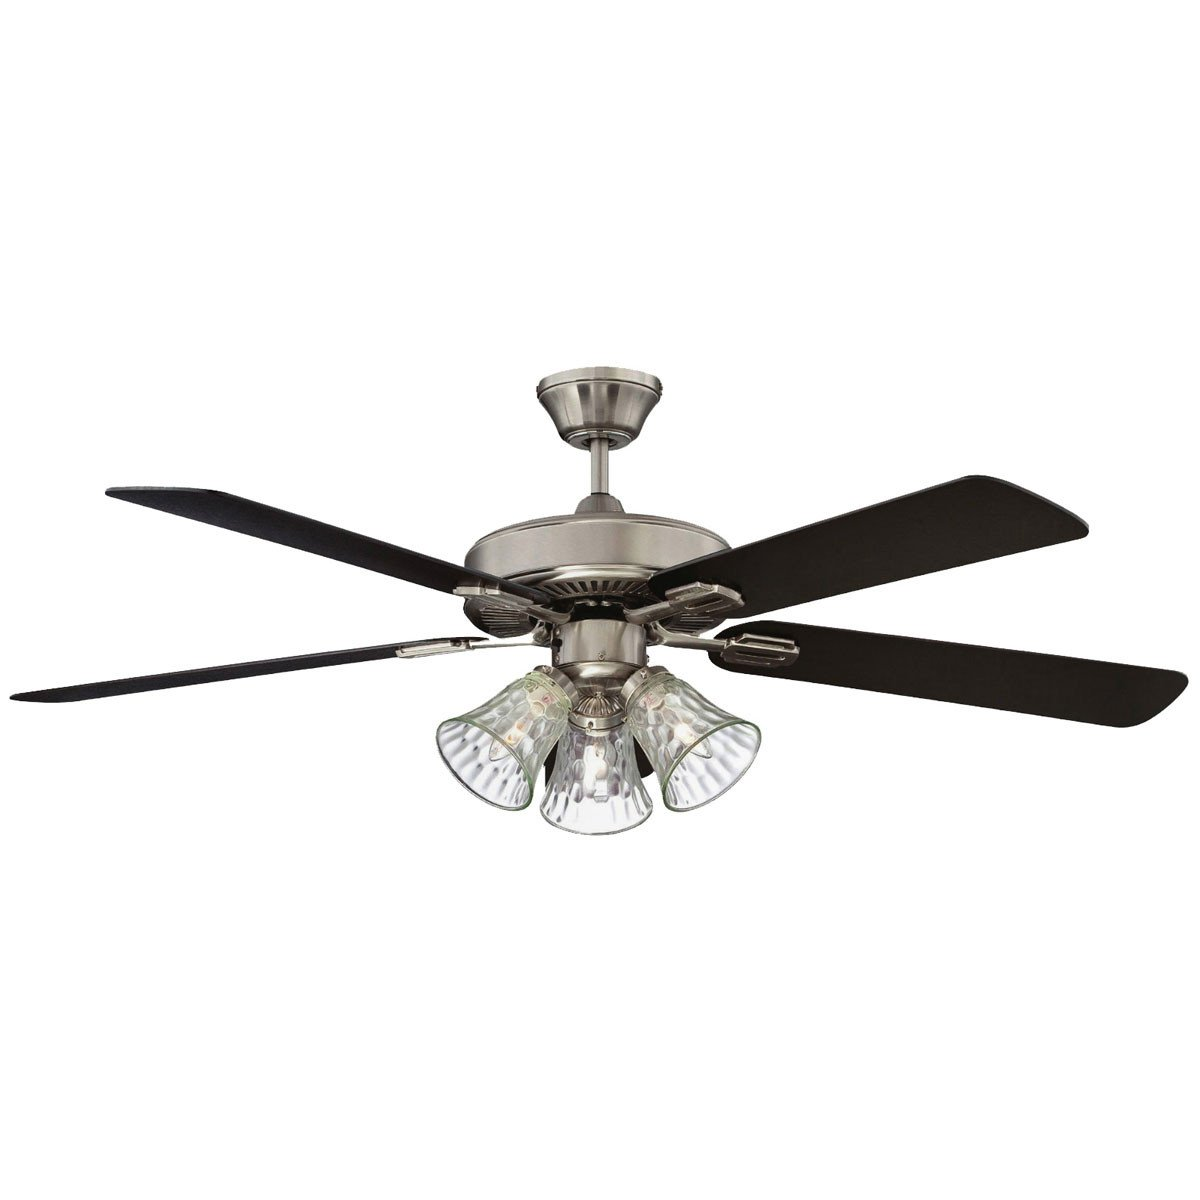 "Concord Fans 52"" Richmond Stainless Steel Finish Ceiling Fan with 3 Lights"